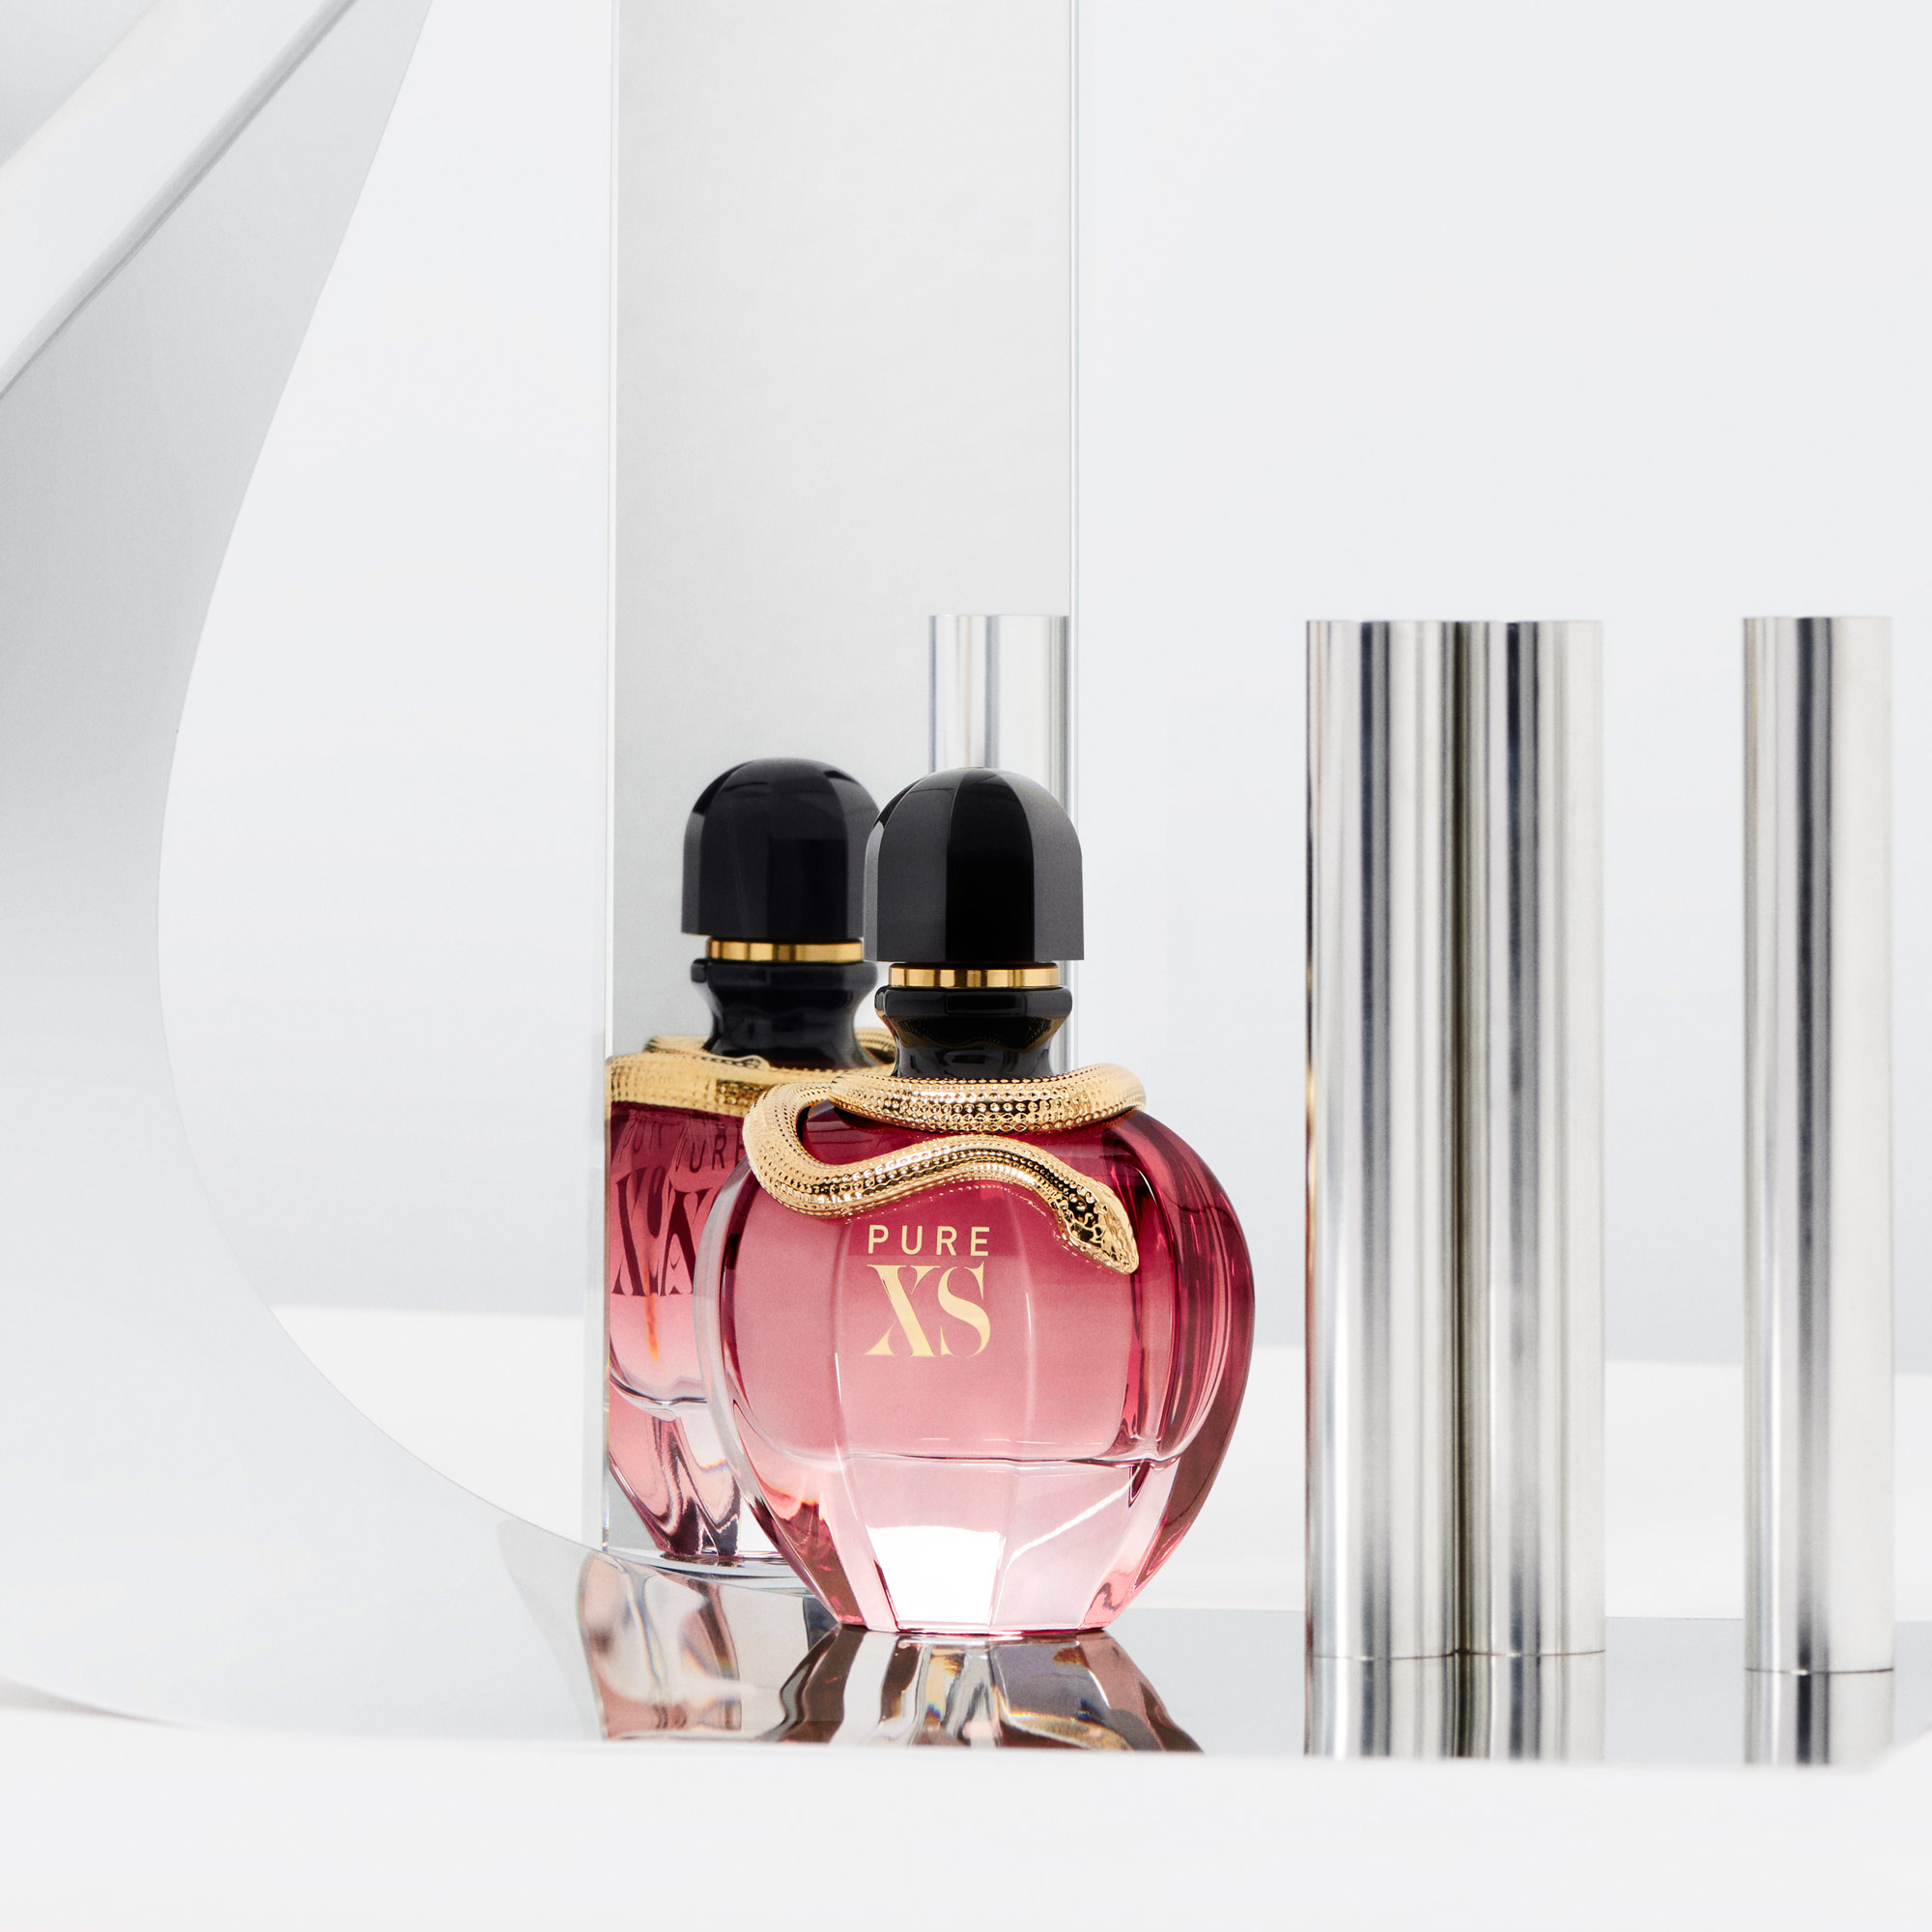 Pure XS Pour Elle - Pure XS For Her - Paco Rabanne